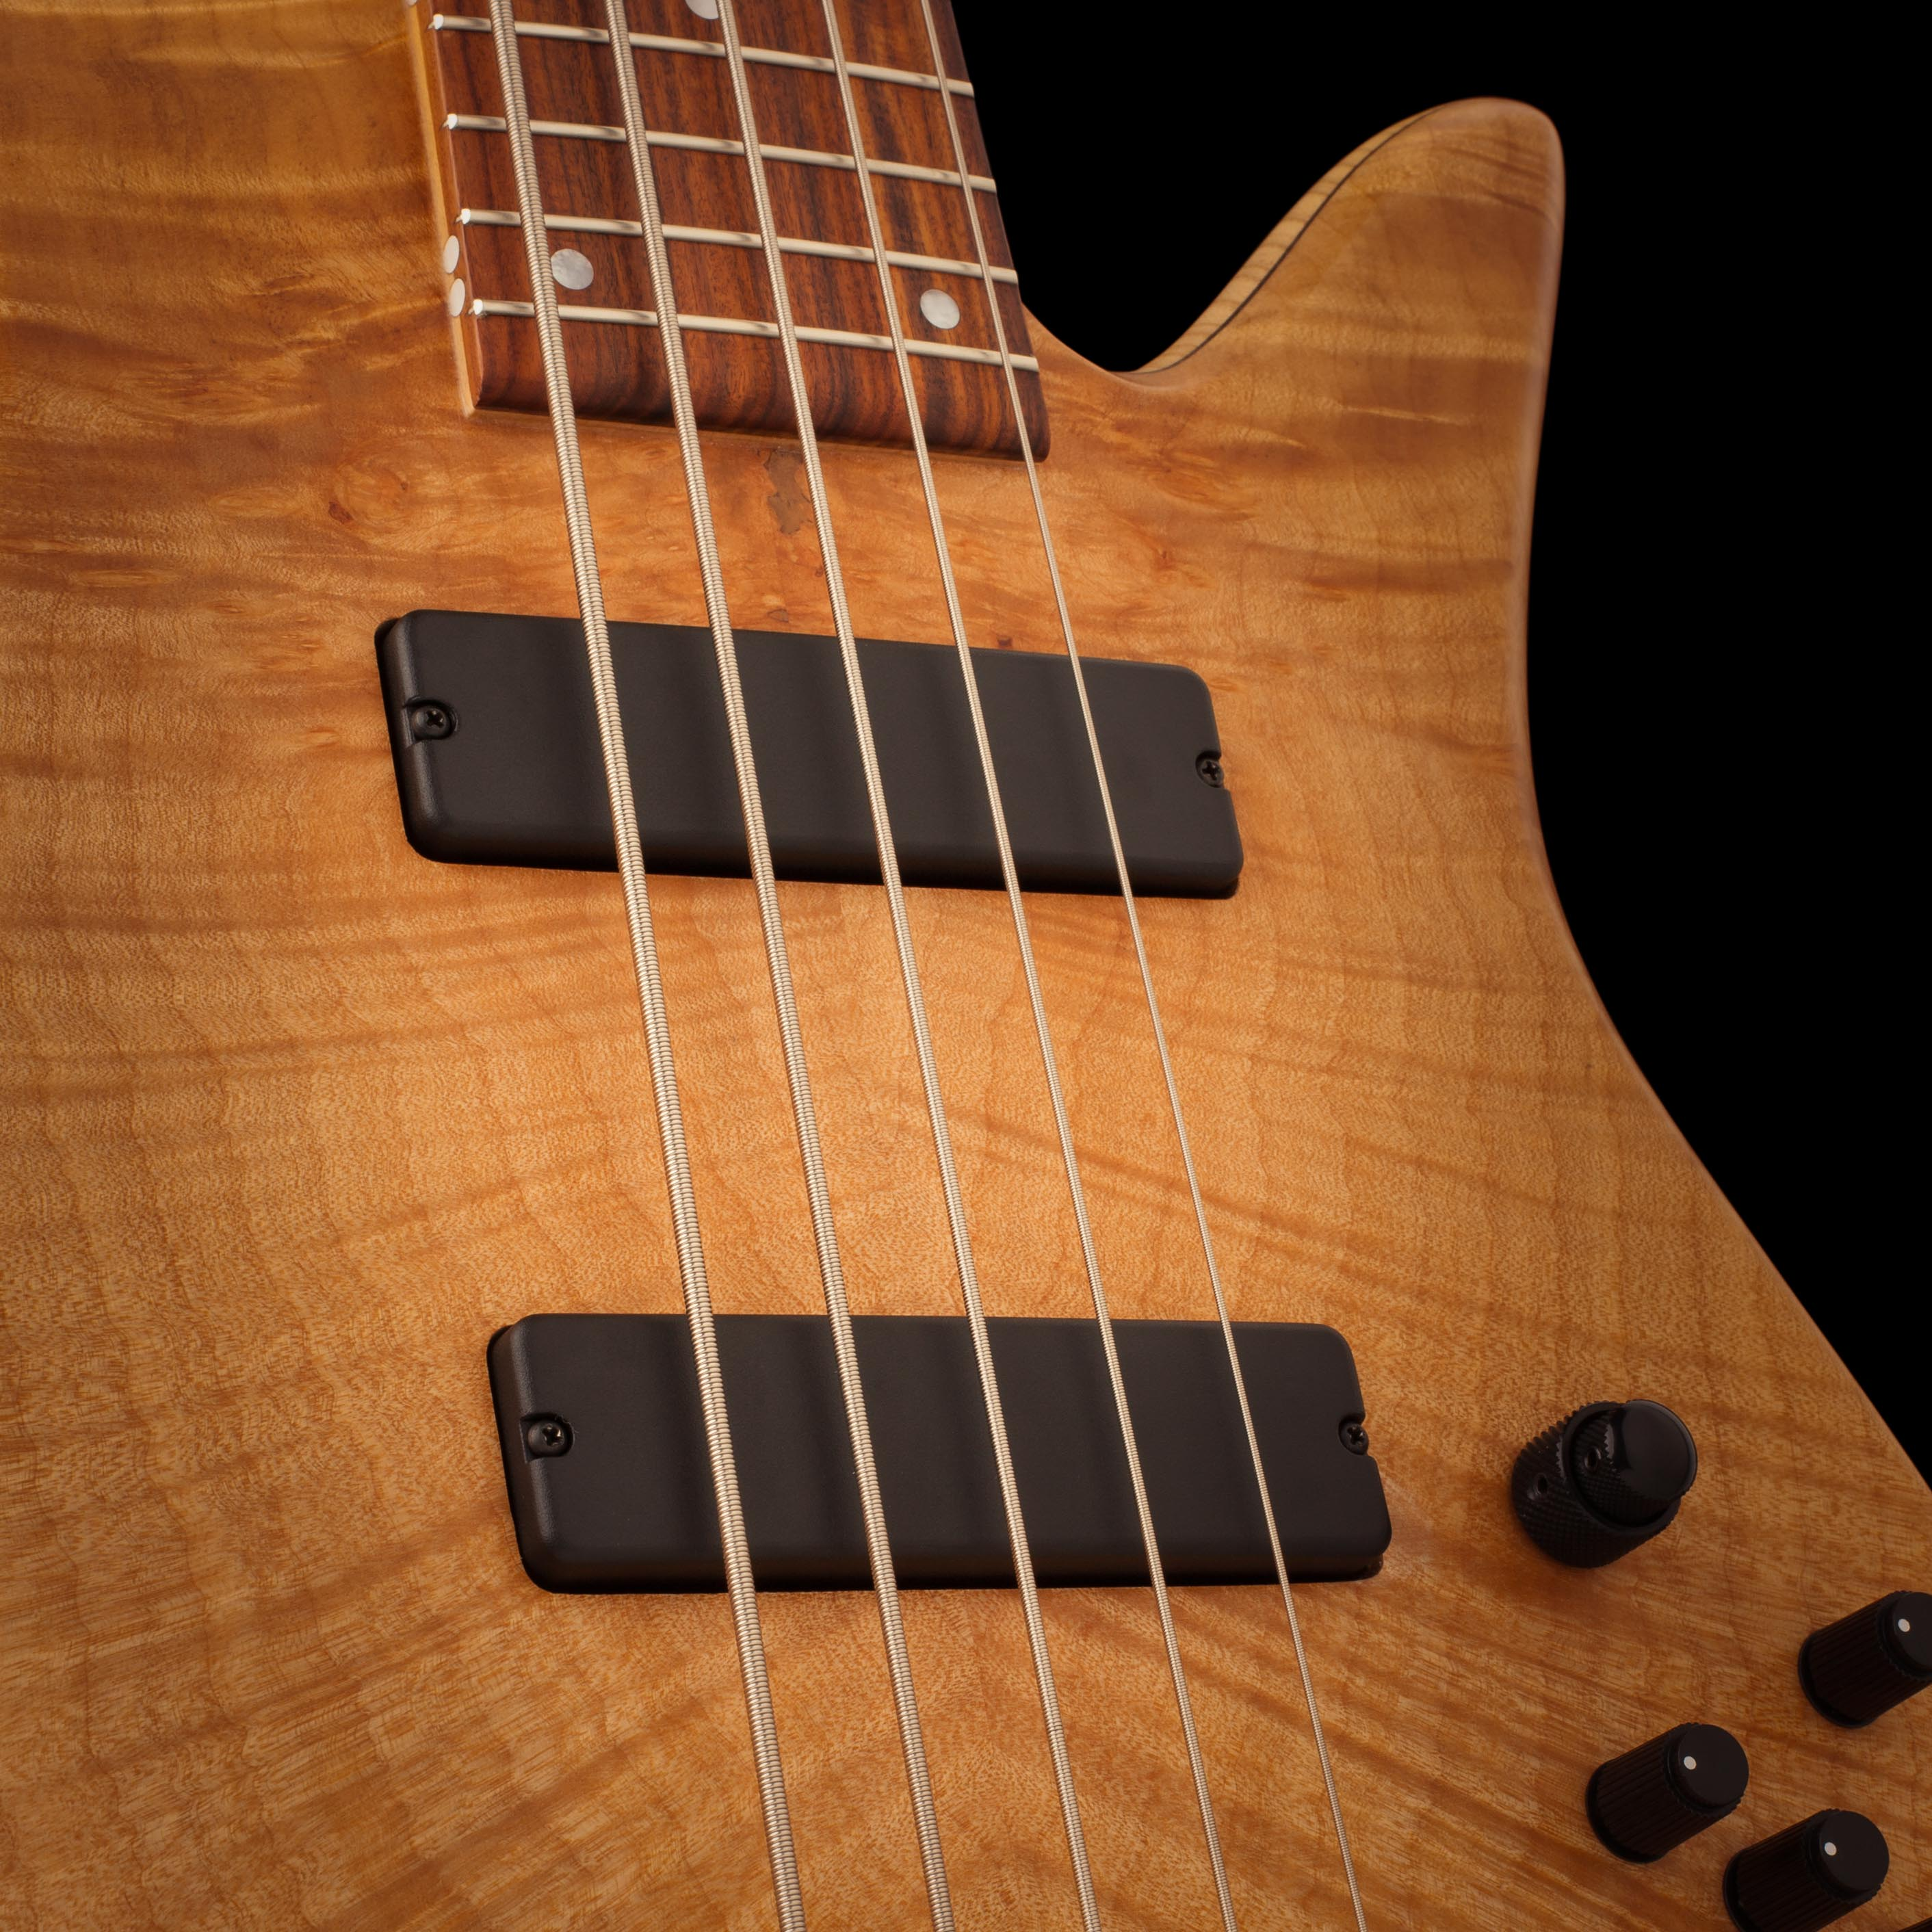 Fodera Bass Guitar Pickups Closeup